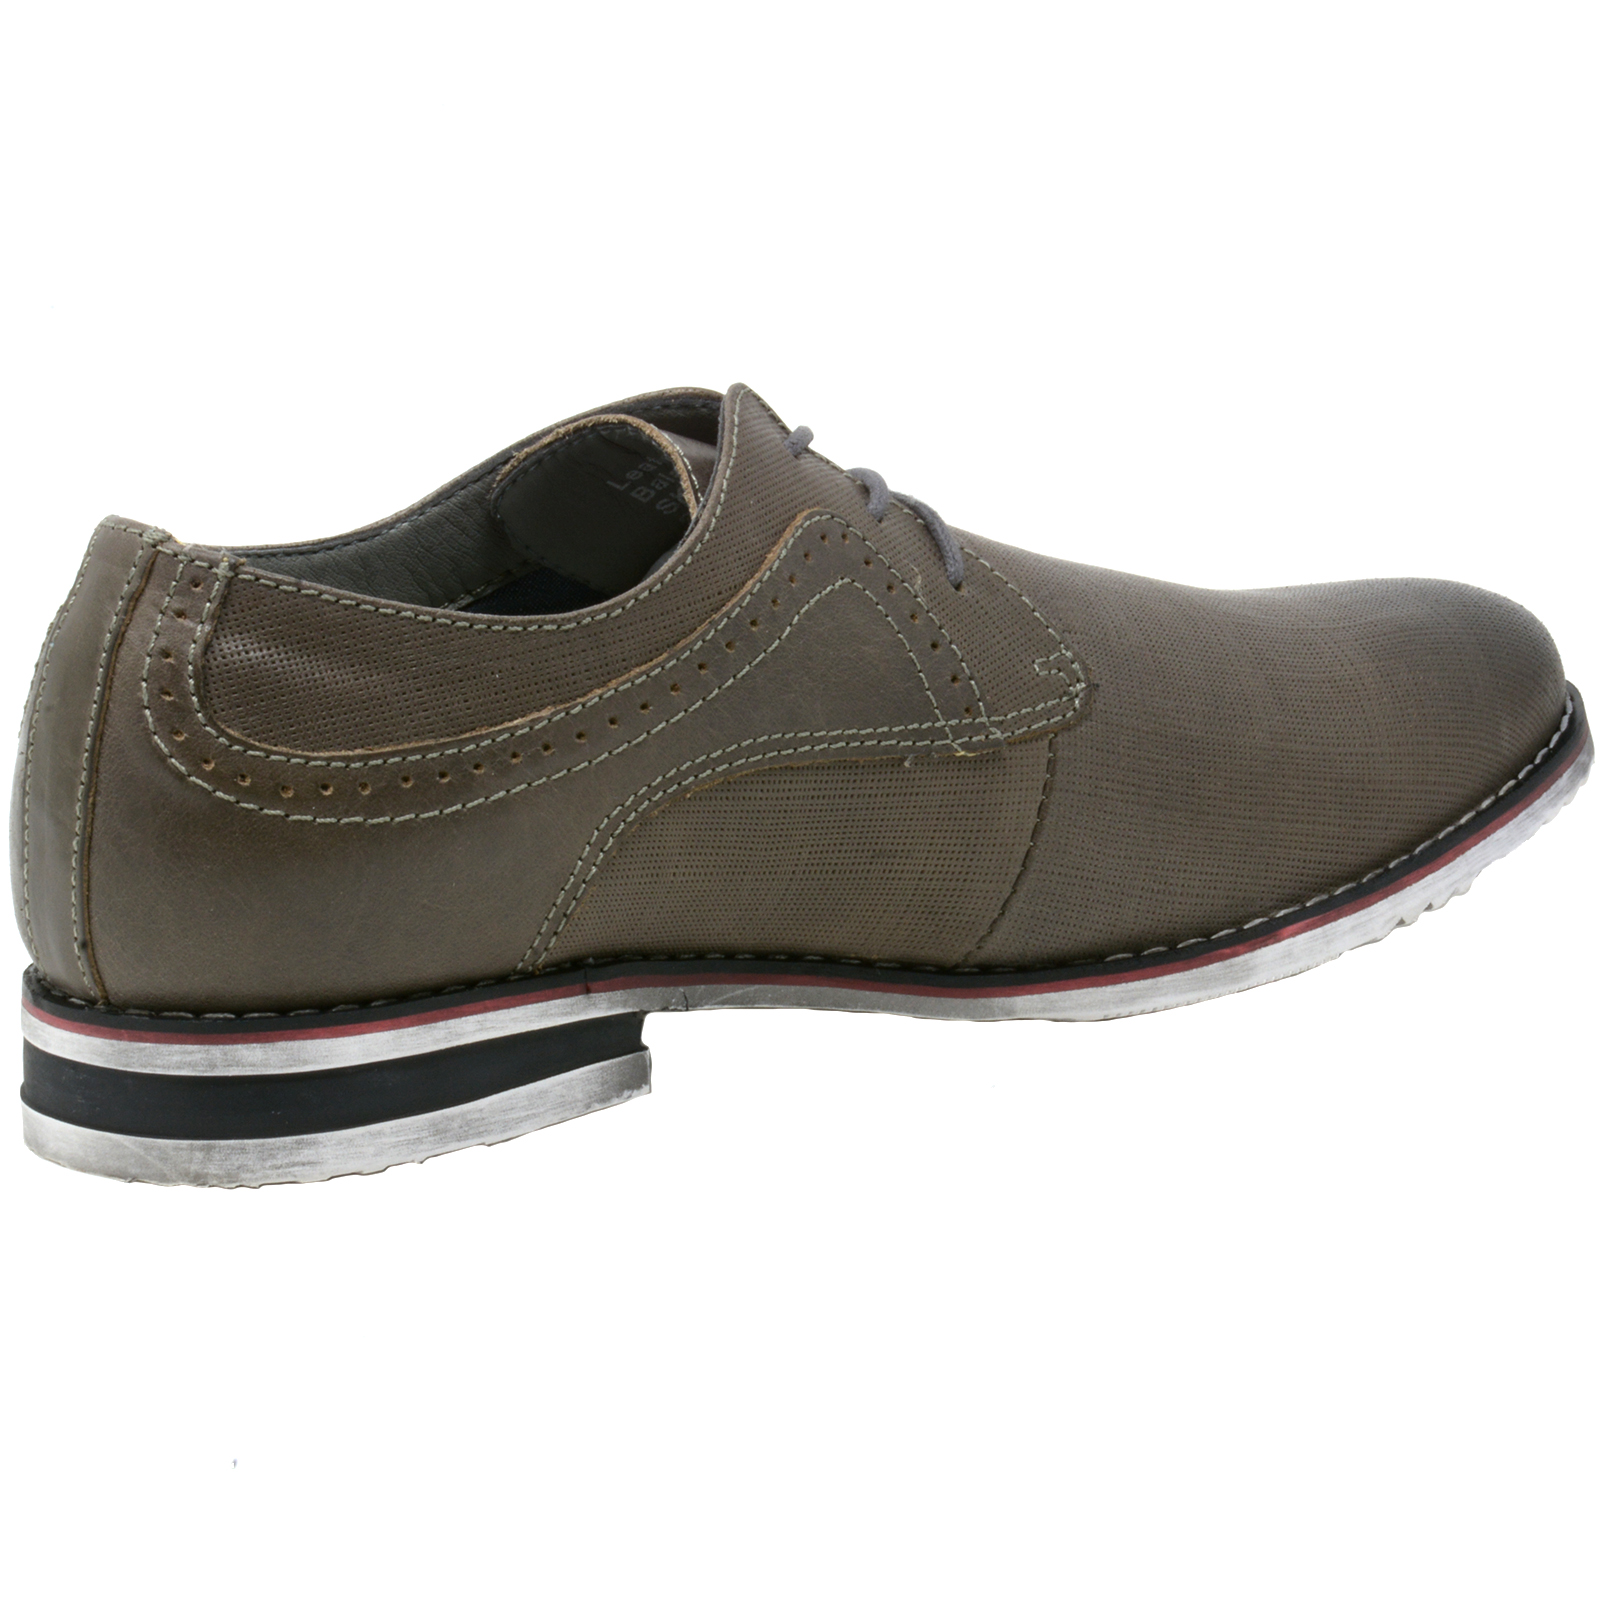 Double-Diamond-by-Alpine-Swiss-Mens-Saffiano-Leather-Lace-Up-Oxford-Dress-Shoes thumbnail 30